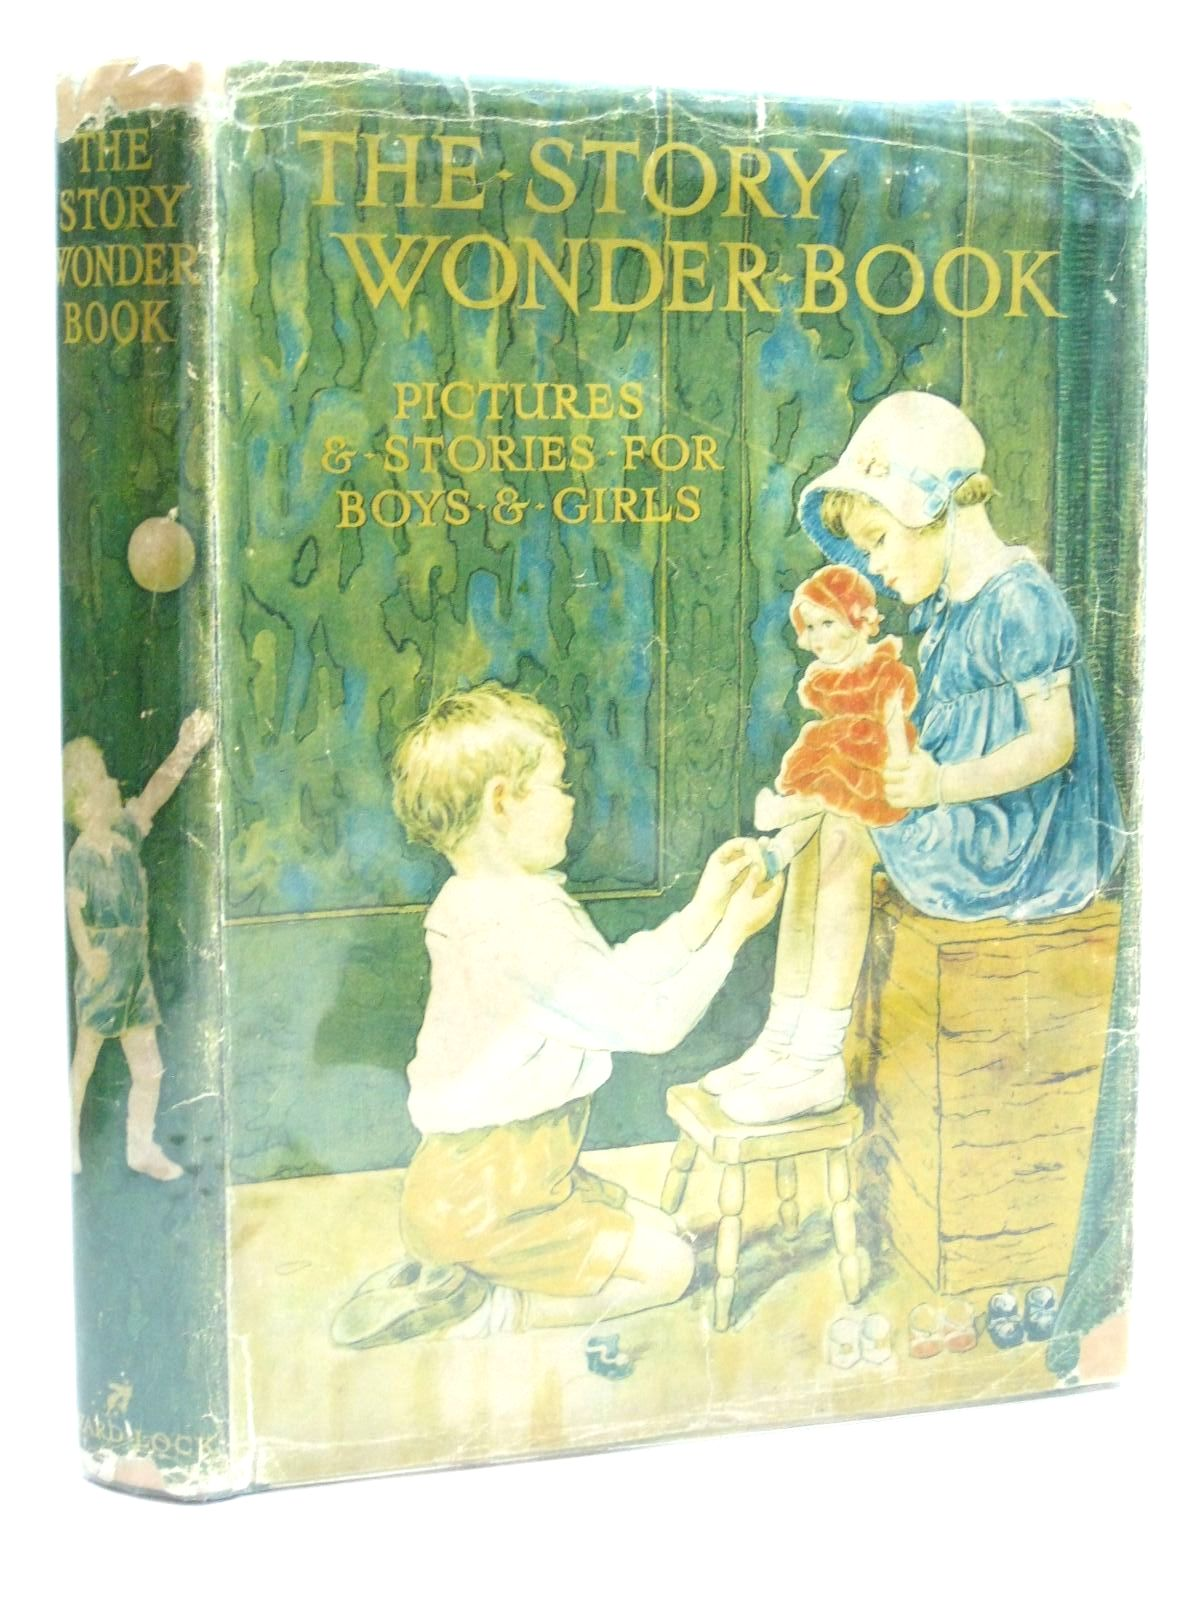 Photo of THE STORY WONDER BOOK FOR BOYS AND GIRLS written by Golding, Harry<br />Wynne, May<br />Anderson, Anne<br />Talbot, Ethel<br />et al, illustrated by Jones, Grace<br />Pearse, S.B.<br />Tarrant, Margaret<br />Topham, Inez<br />et al., published by Ward, Lock &amp; Co. Ltd. (STOCK CODE: 1505990)  for sale by Stella & Rose's Books